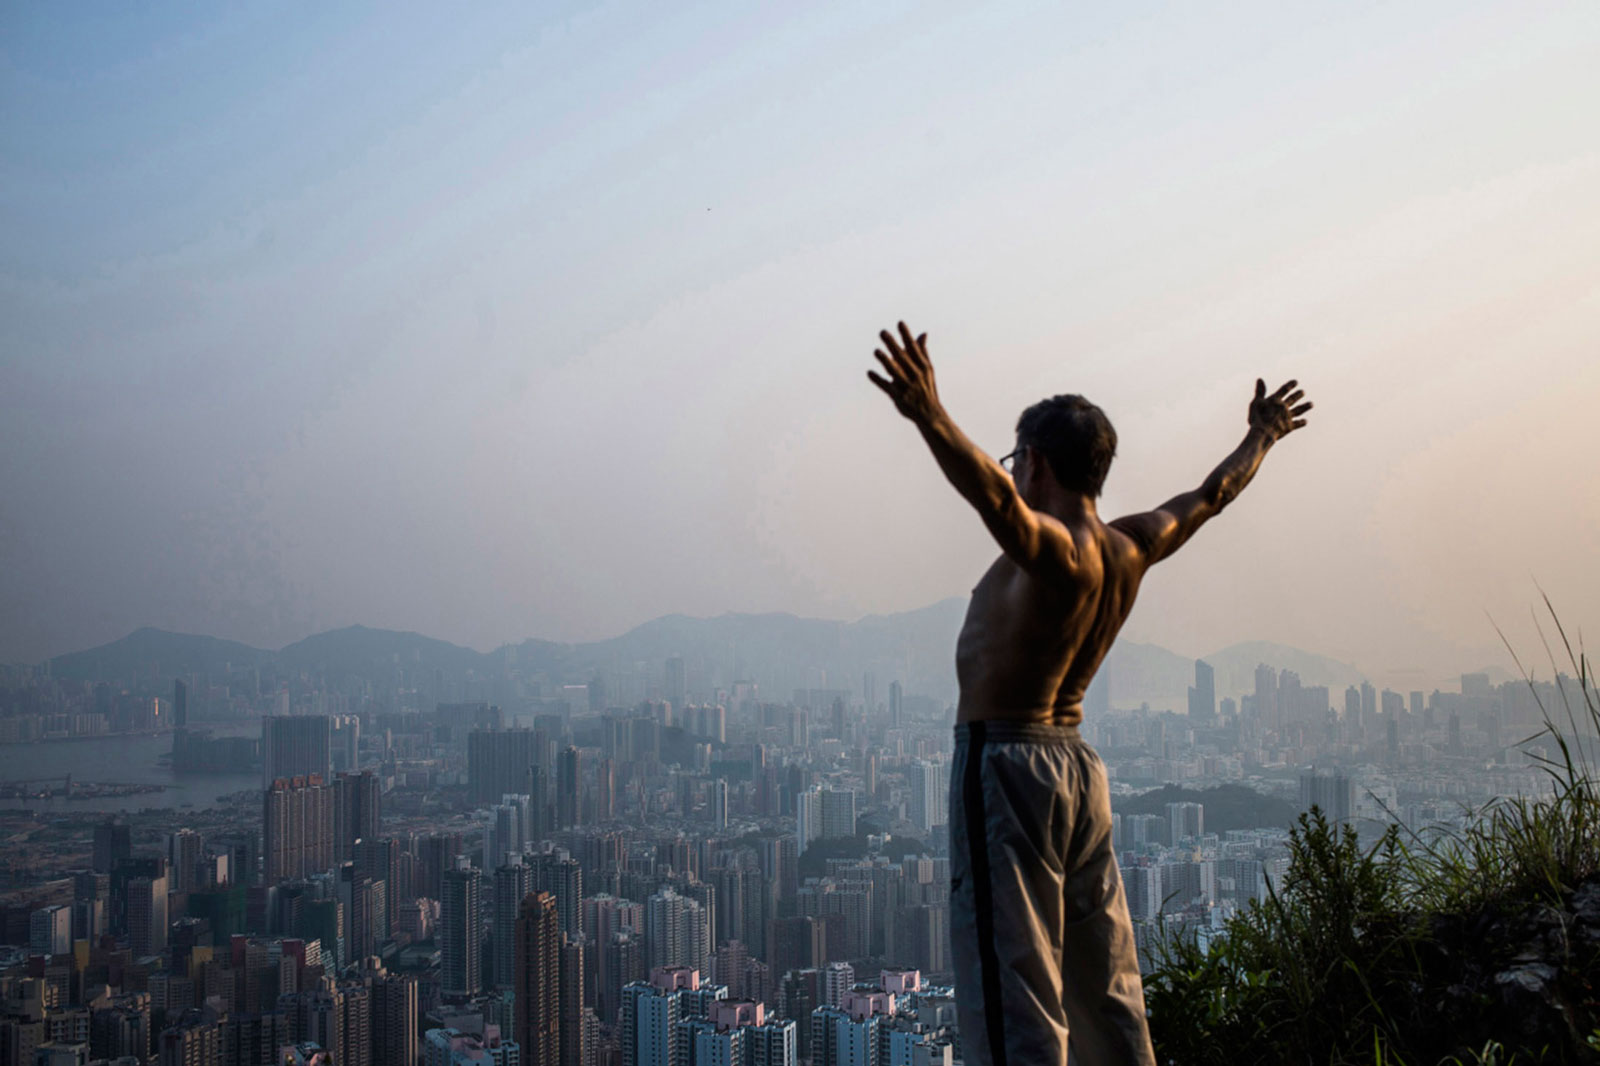 A man stretches as buildings rise in the background in Hong Kong